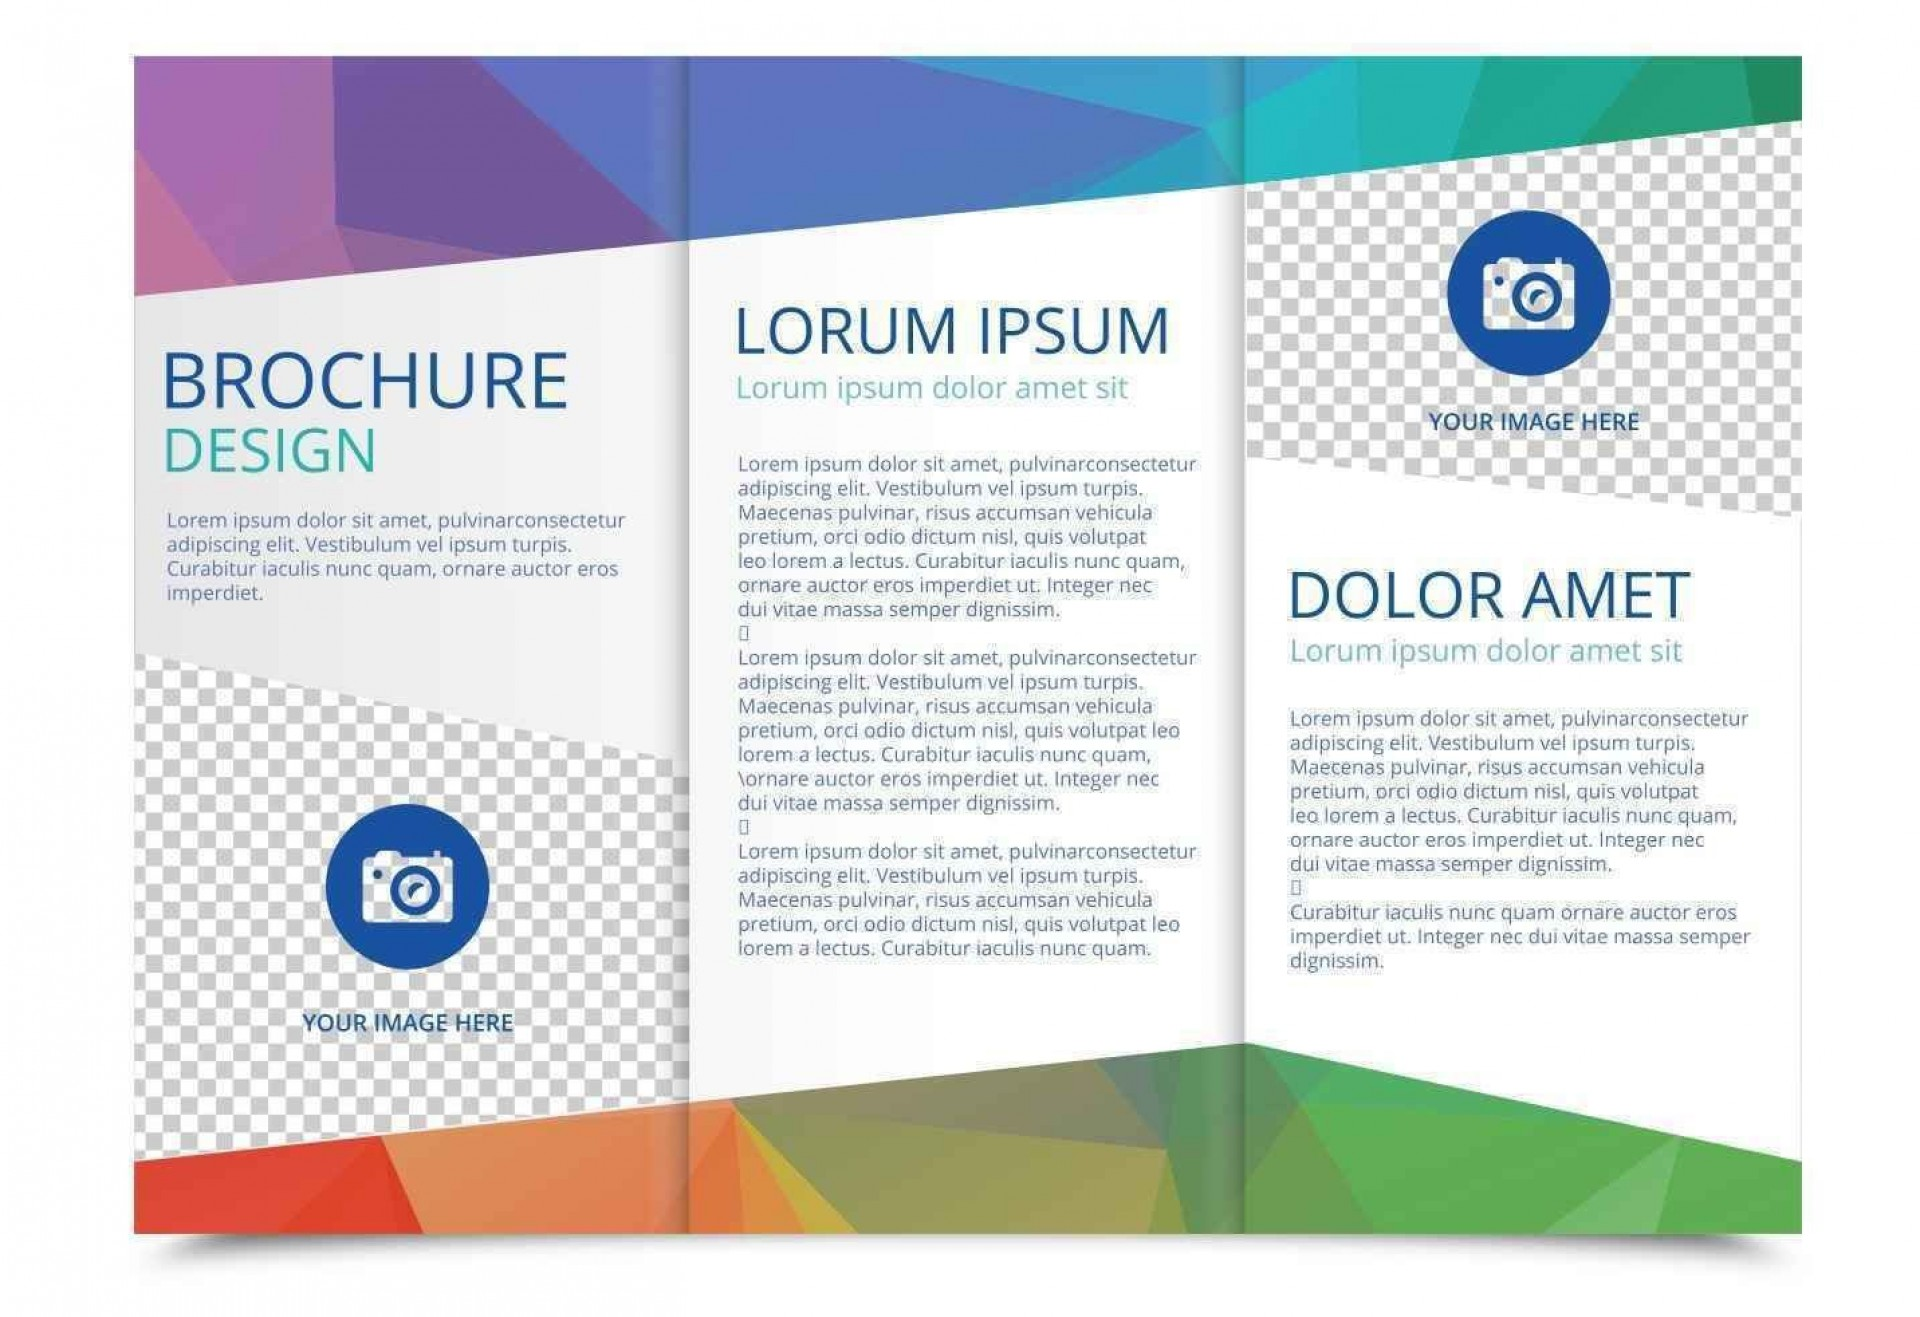 001 Impressive Brochure Template Microsoft Word Free Tri Fold High Definition  Blank For 2010 Download1920